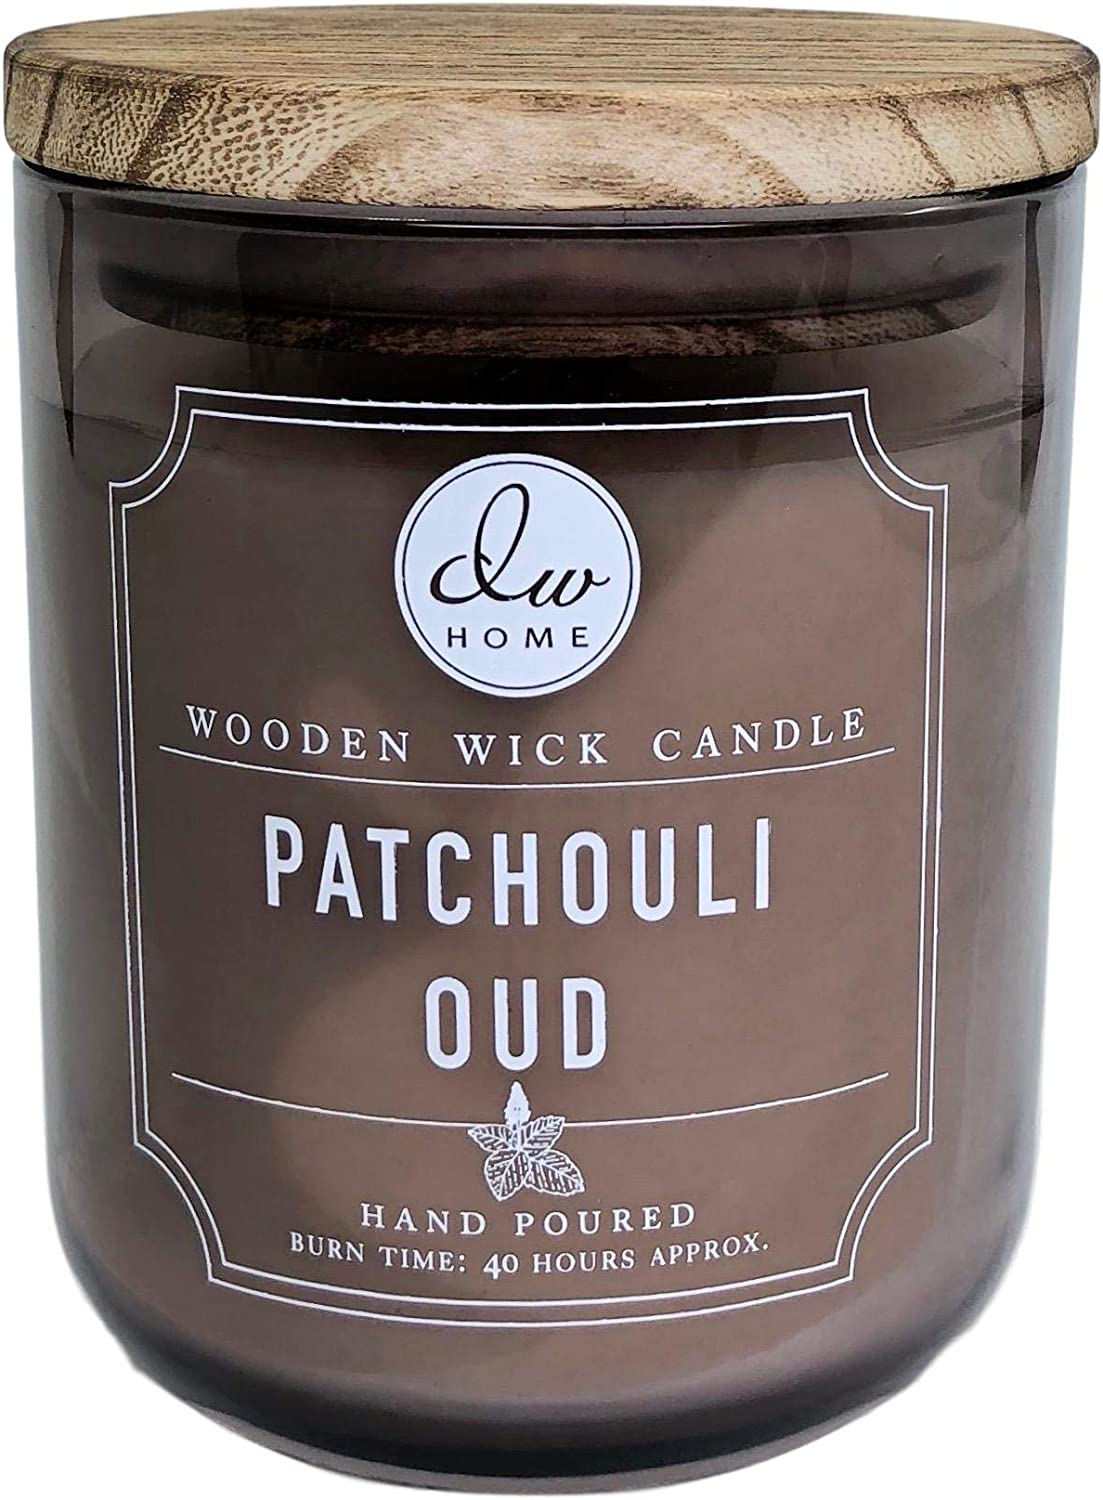 DW Home Patchouli Oud Scented Candle Wooden Wick